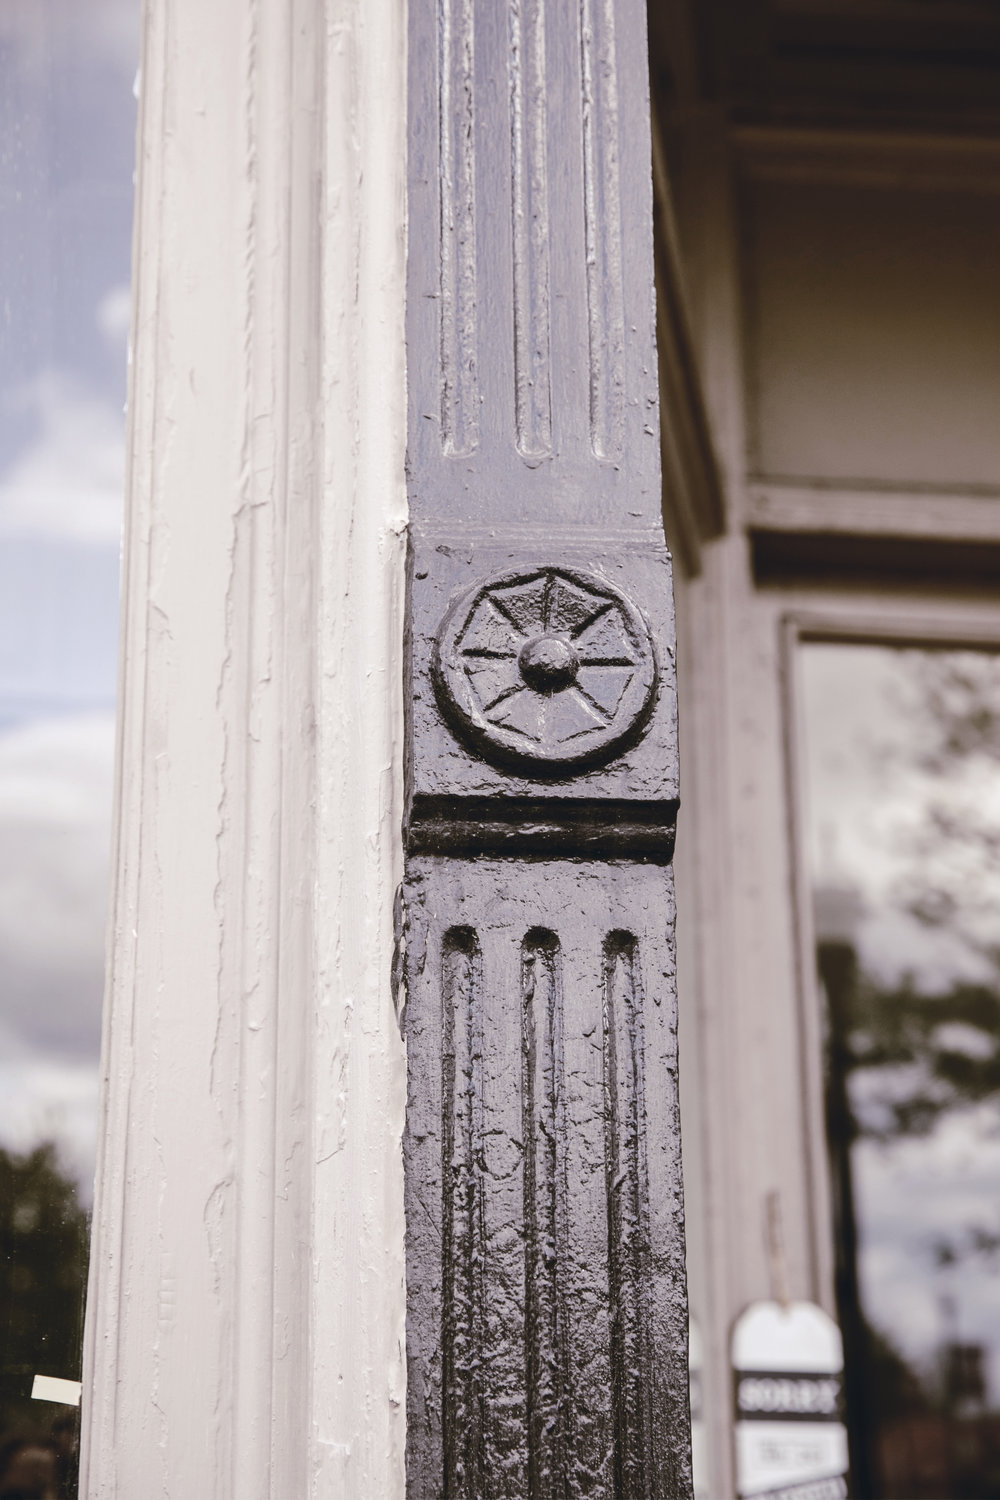 Historic architectural detail from Benton Supply Co building in Monticello GA / heirloomed